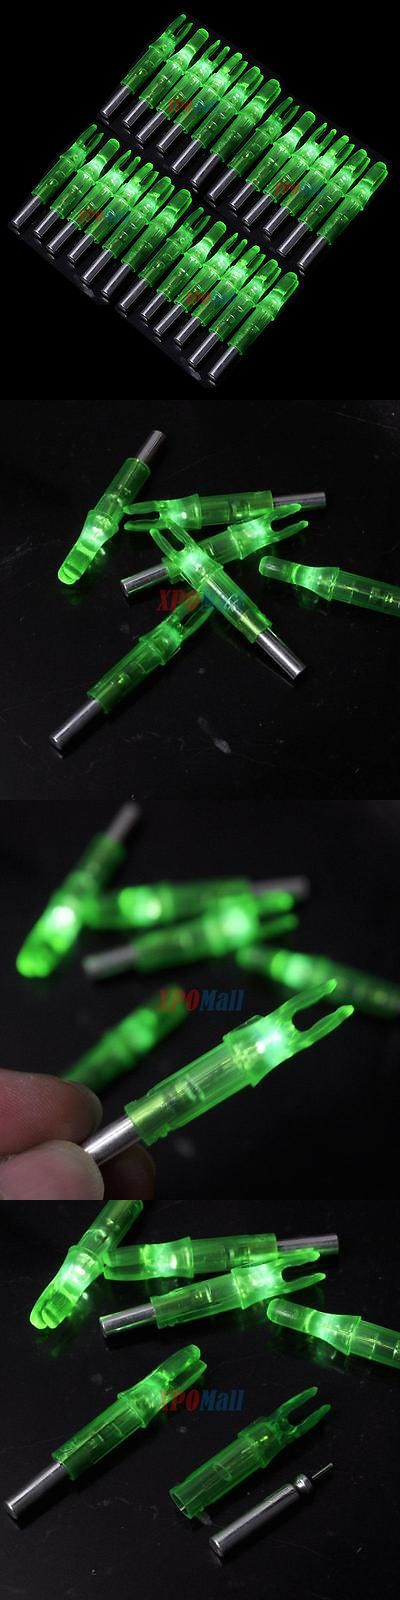 Nocks 181311: 24Pcs Shooting Archery Led Lighted Nock Compound Bow 6.2Mm Green Arrow Nock Us -> BUY IT NOW ONLY: $36.9 on eBay!